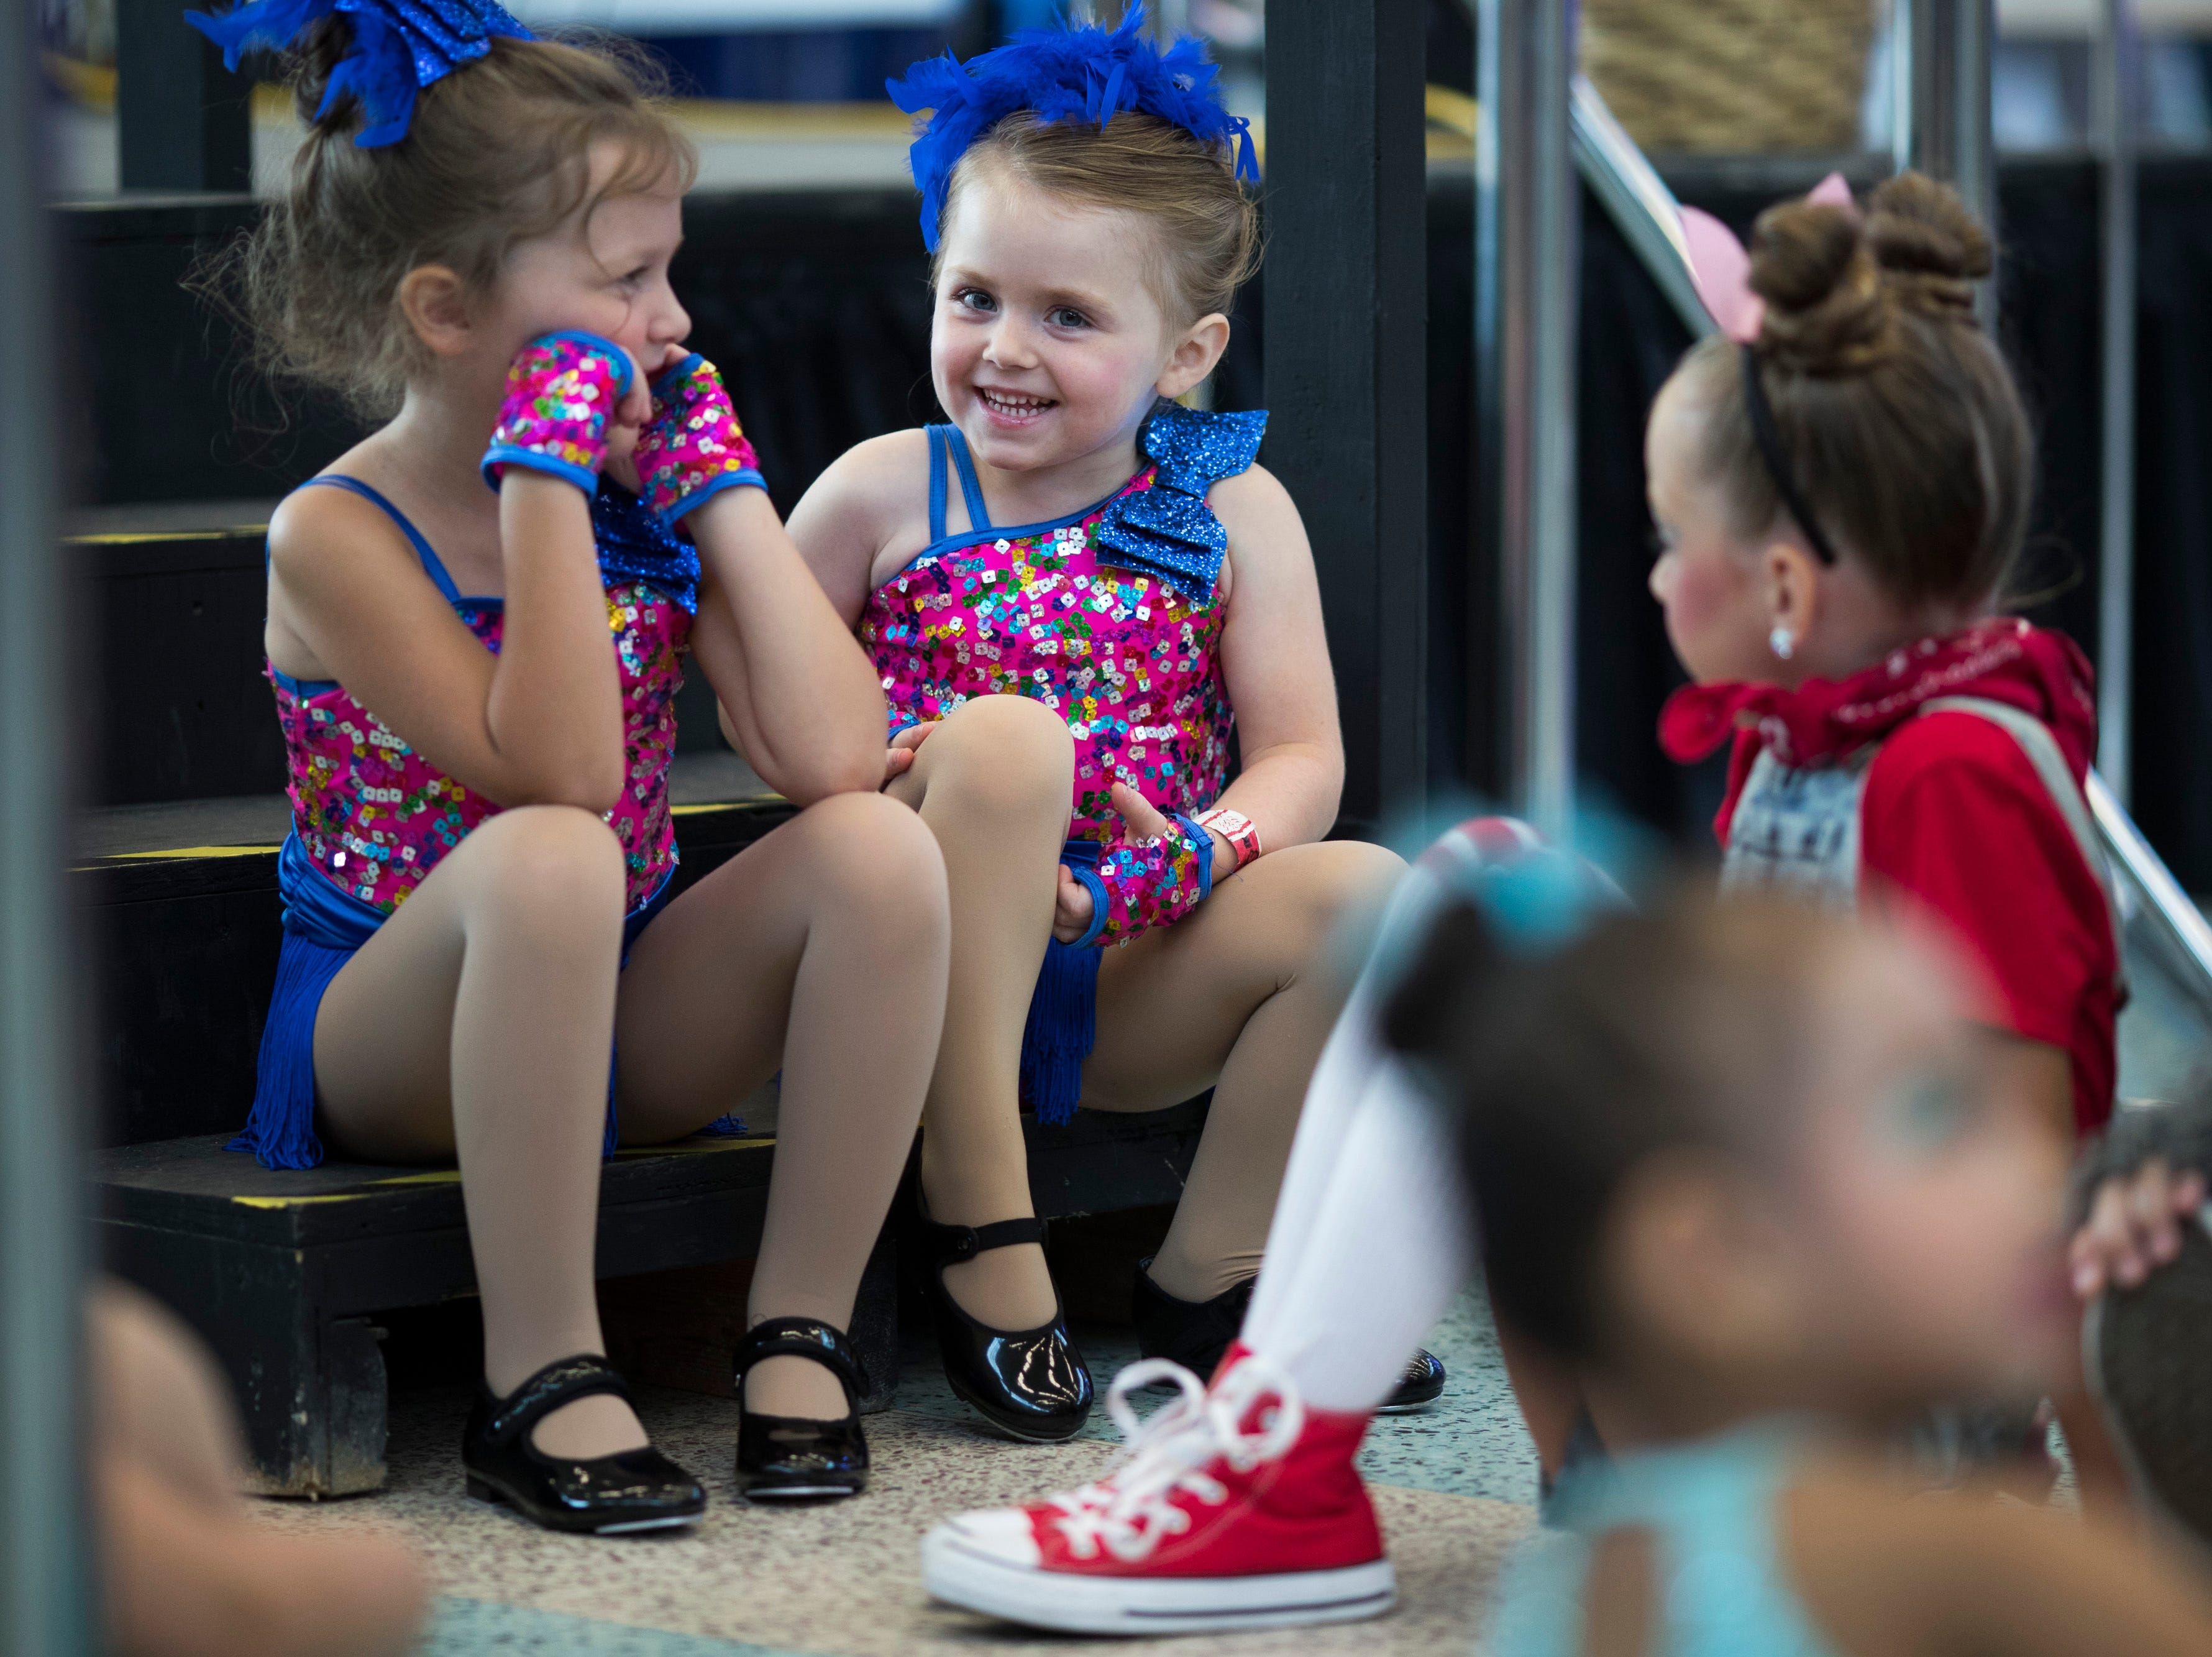 Kate Osborne, left, and Grace Coyle sit backstage before a dance performance at the Kentucky State Fair on Monday. Aug. 20, 2018